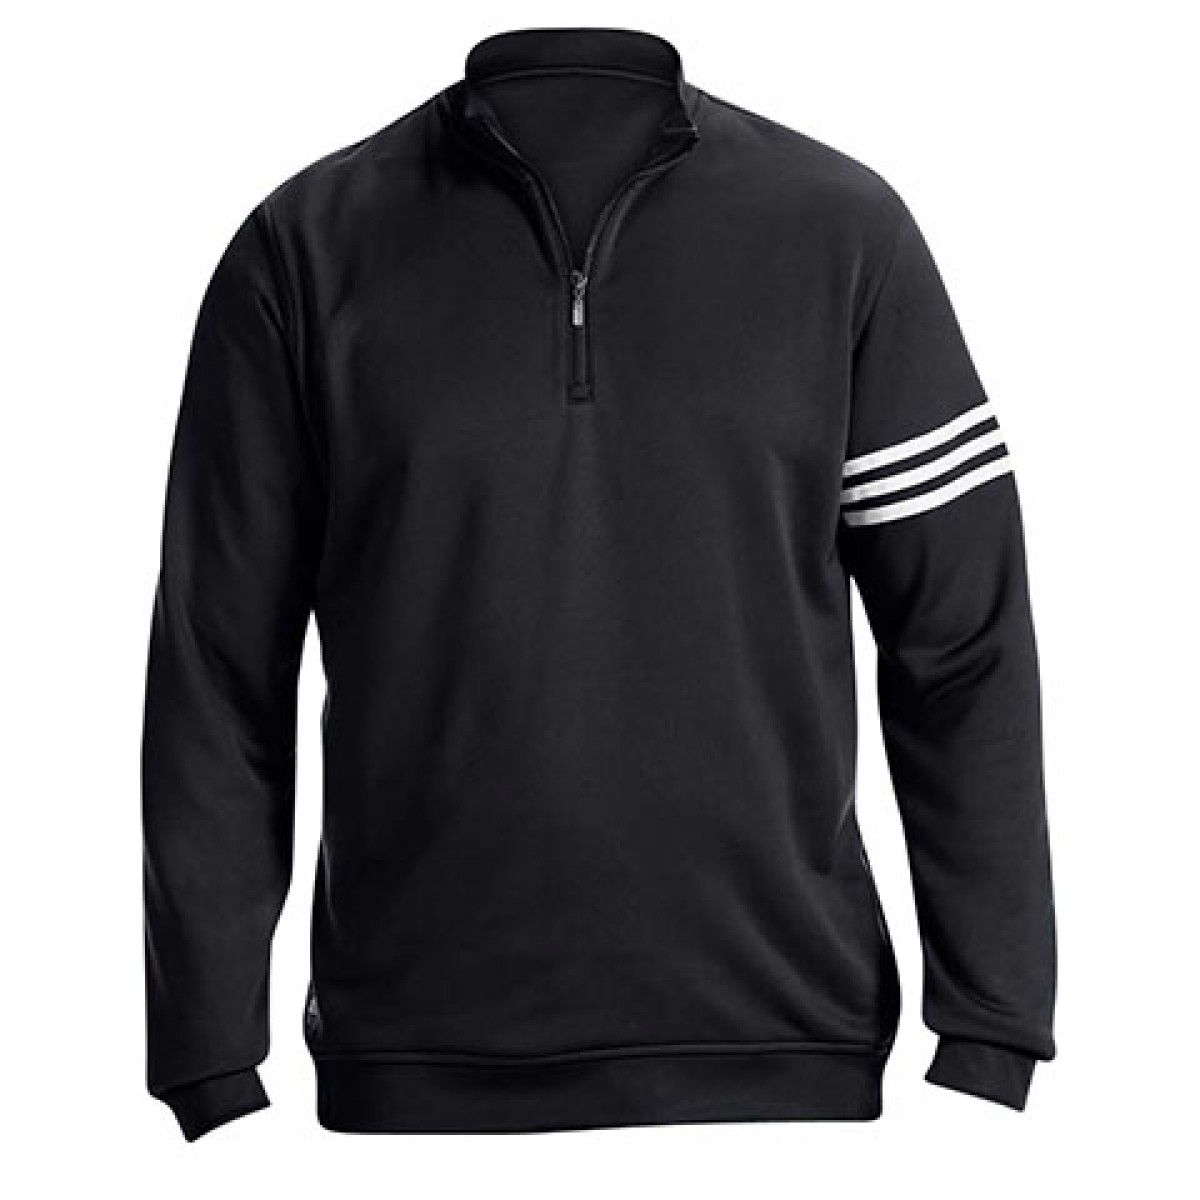 Adidas Golf Men's ClimaLite® 3-Stripes Pullover-Black-3XL